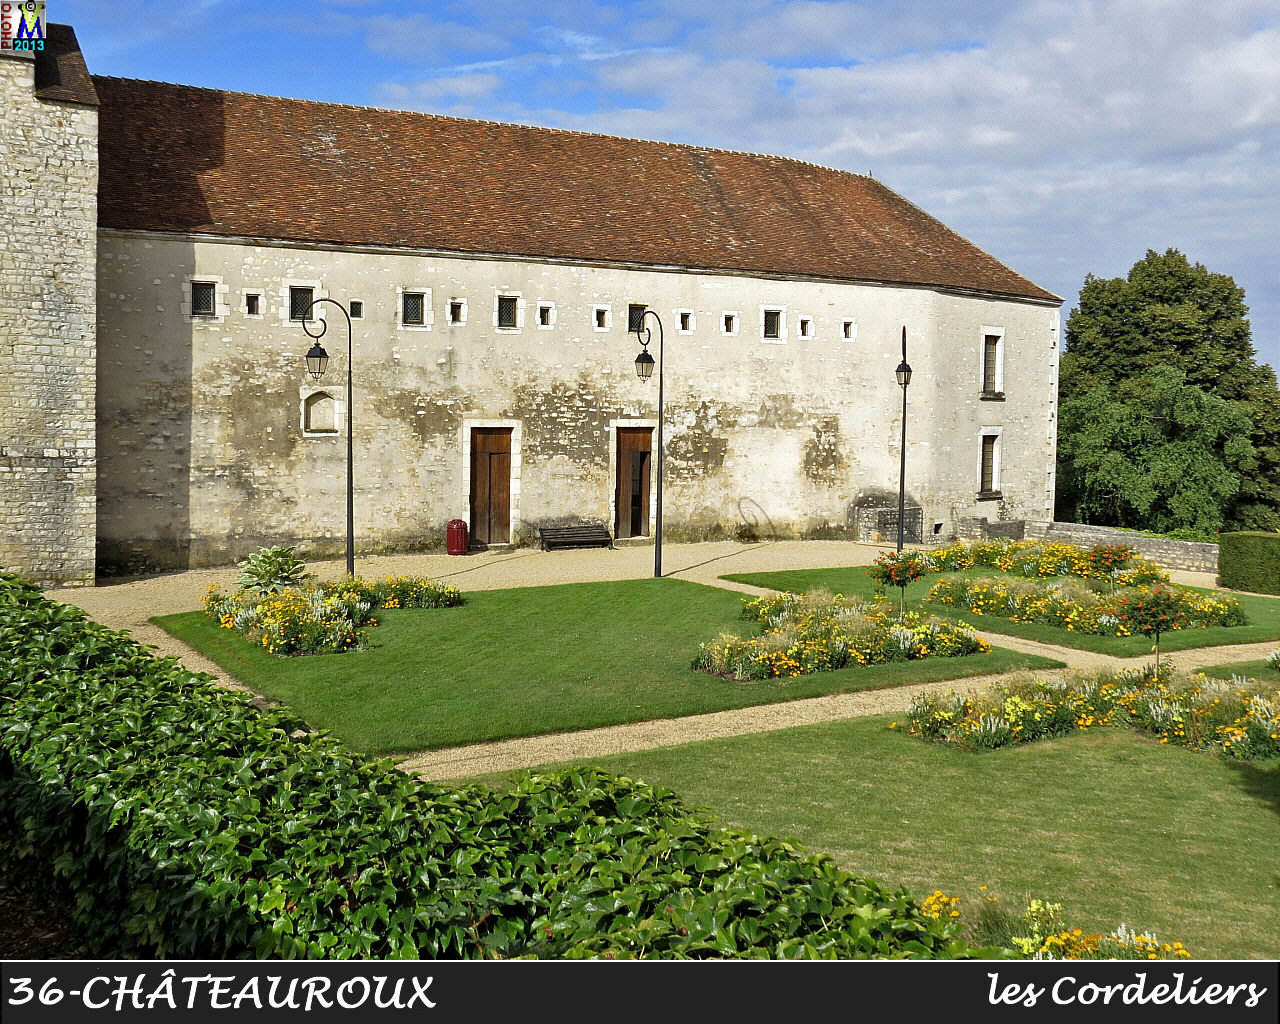 36CHATEAUROUX_cordeliers_102.jpg